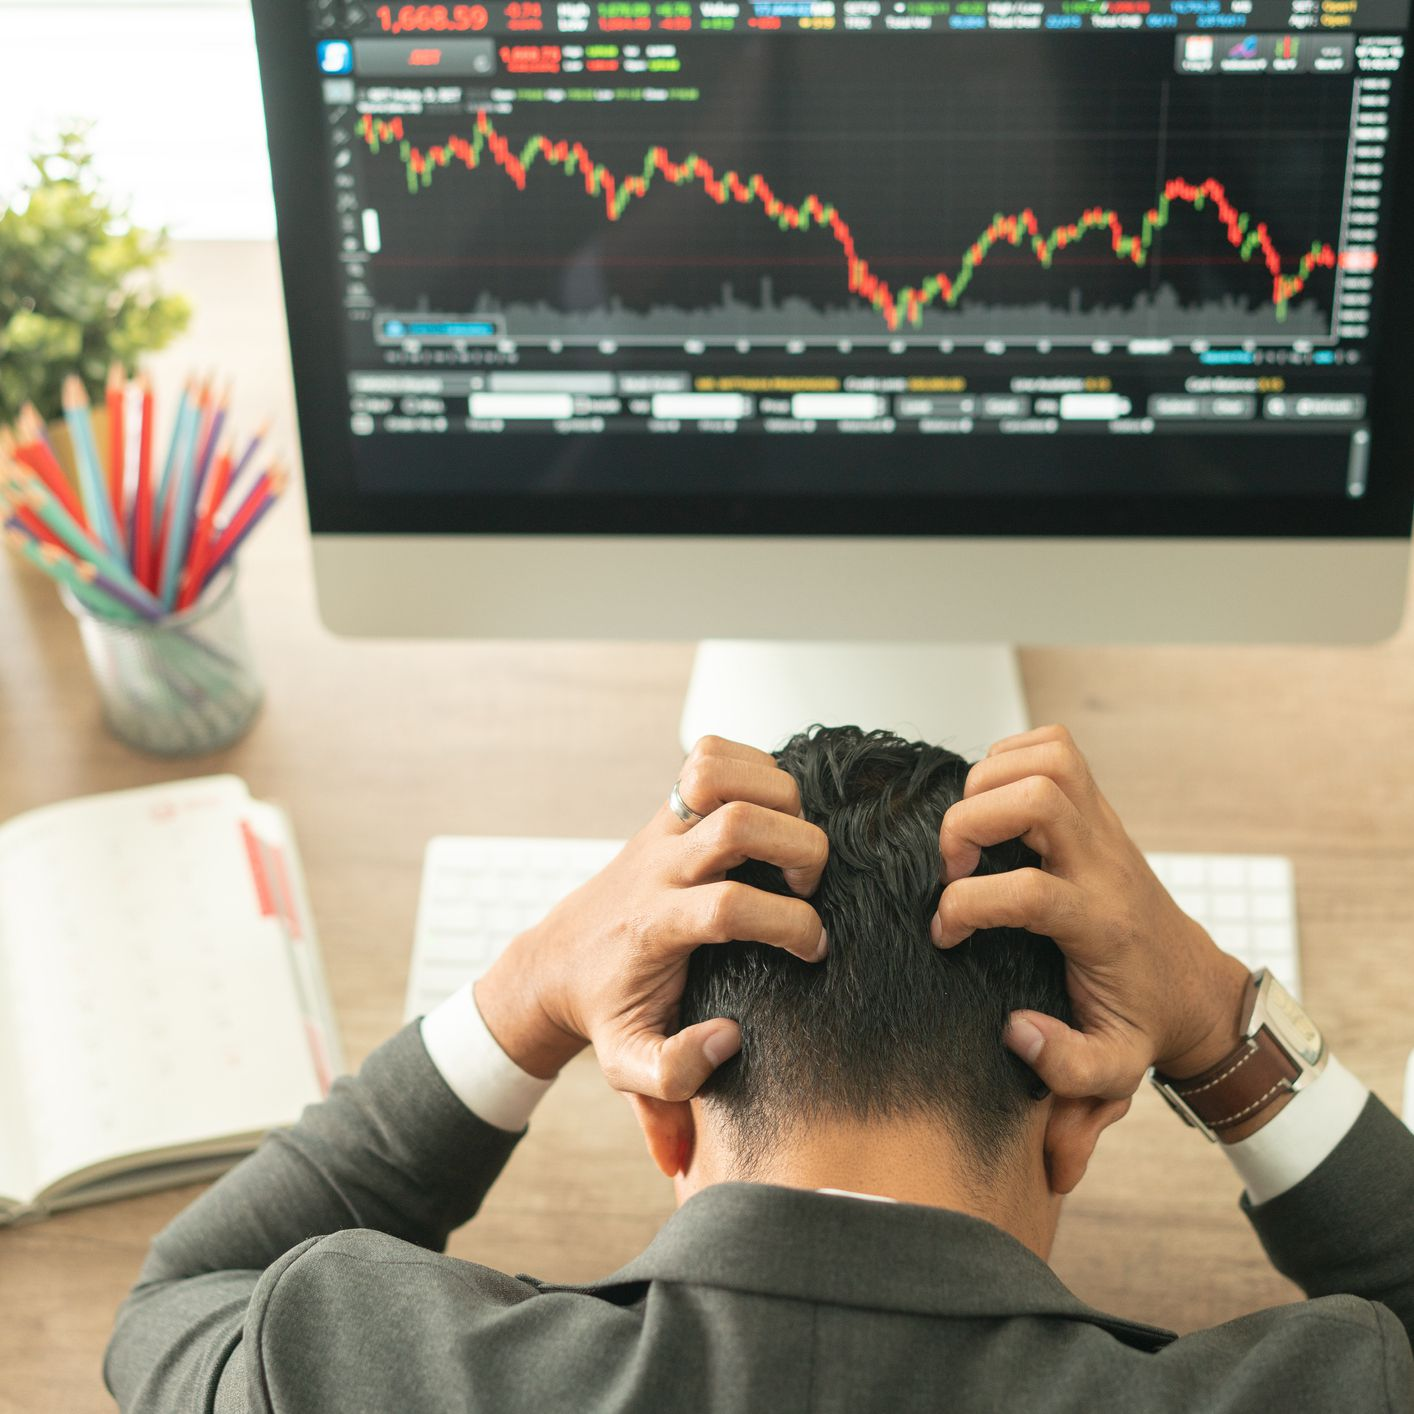 What Happens to Stocks After Chapter 11?